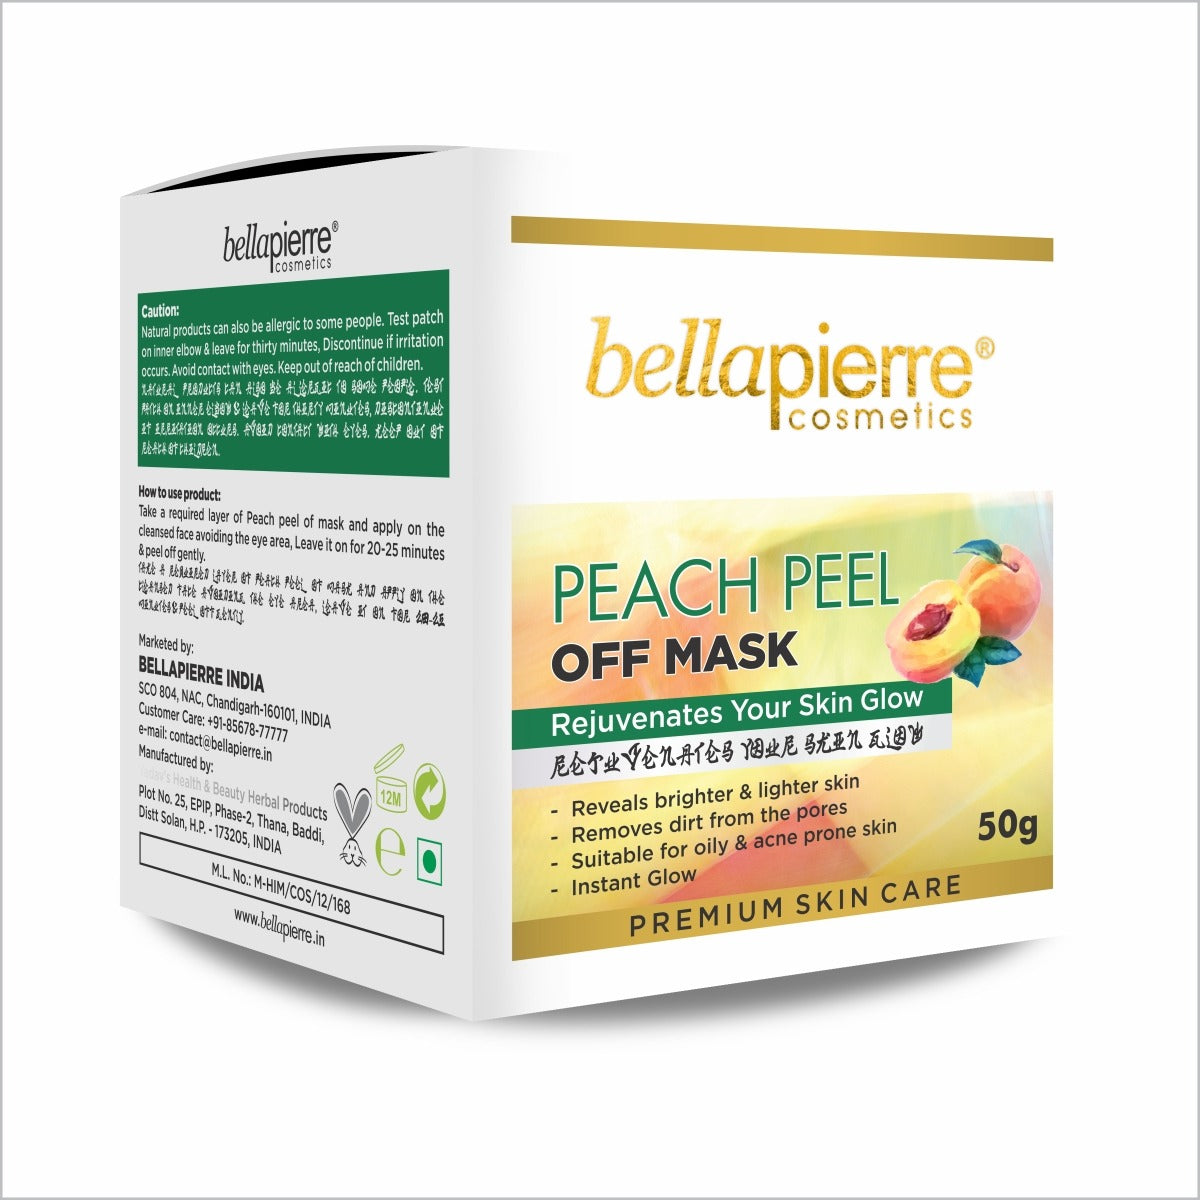 Bellapierre Peach Peel Off Mask Rejuvenates your Skin Glow For Women's 50Gm